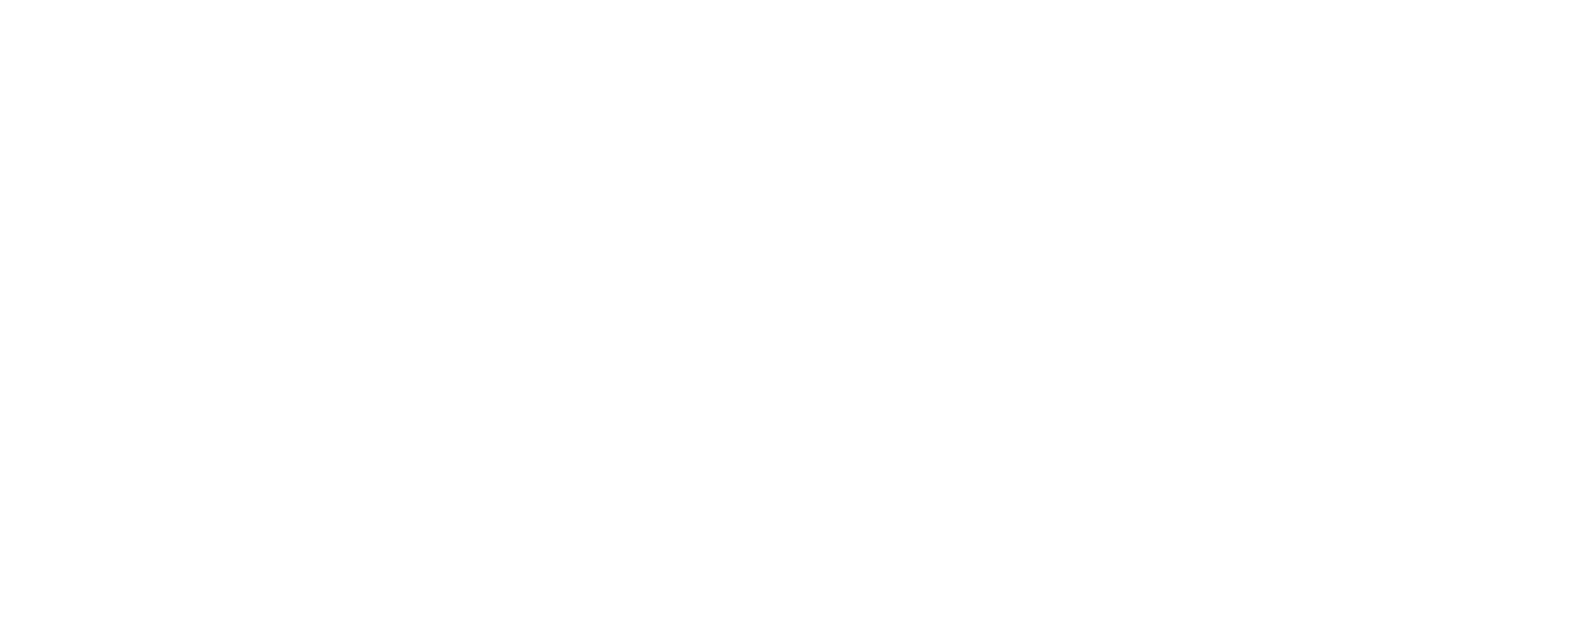 Home - International Manufacturing & Assembly